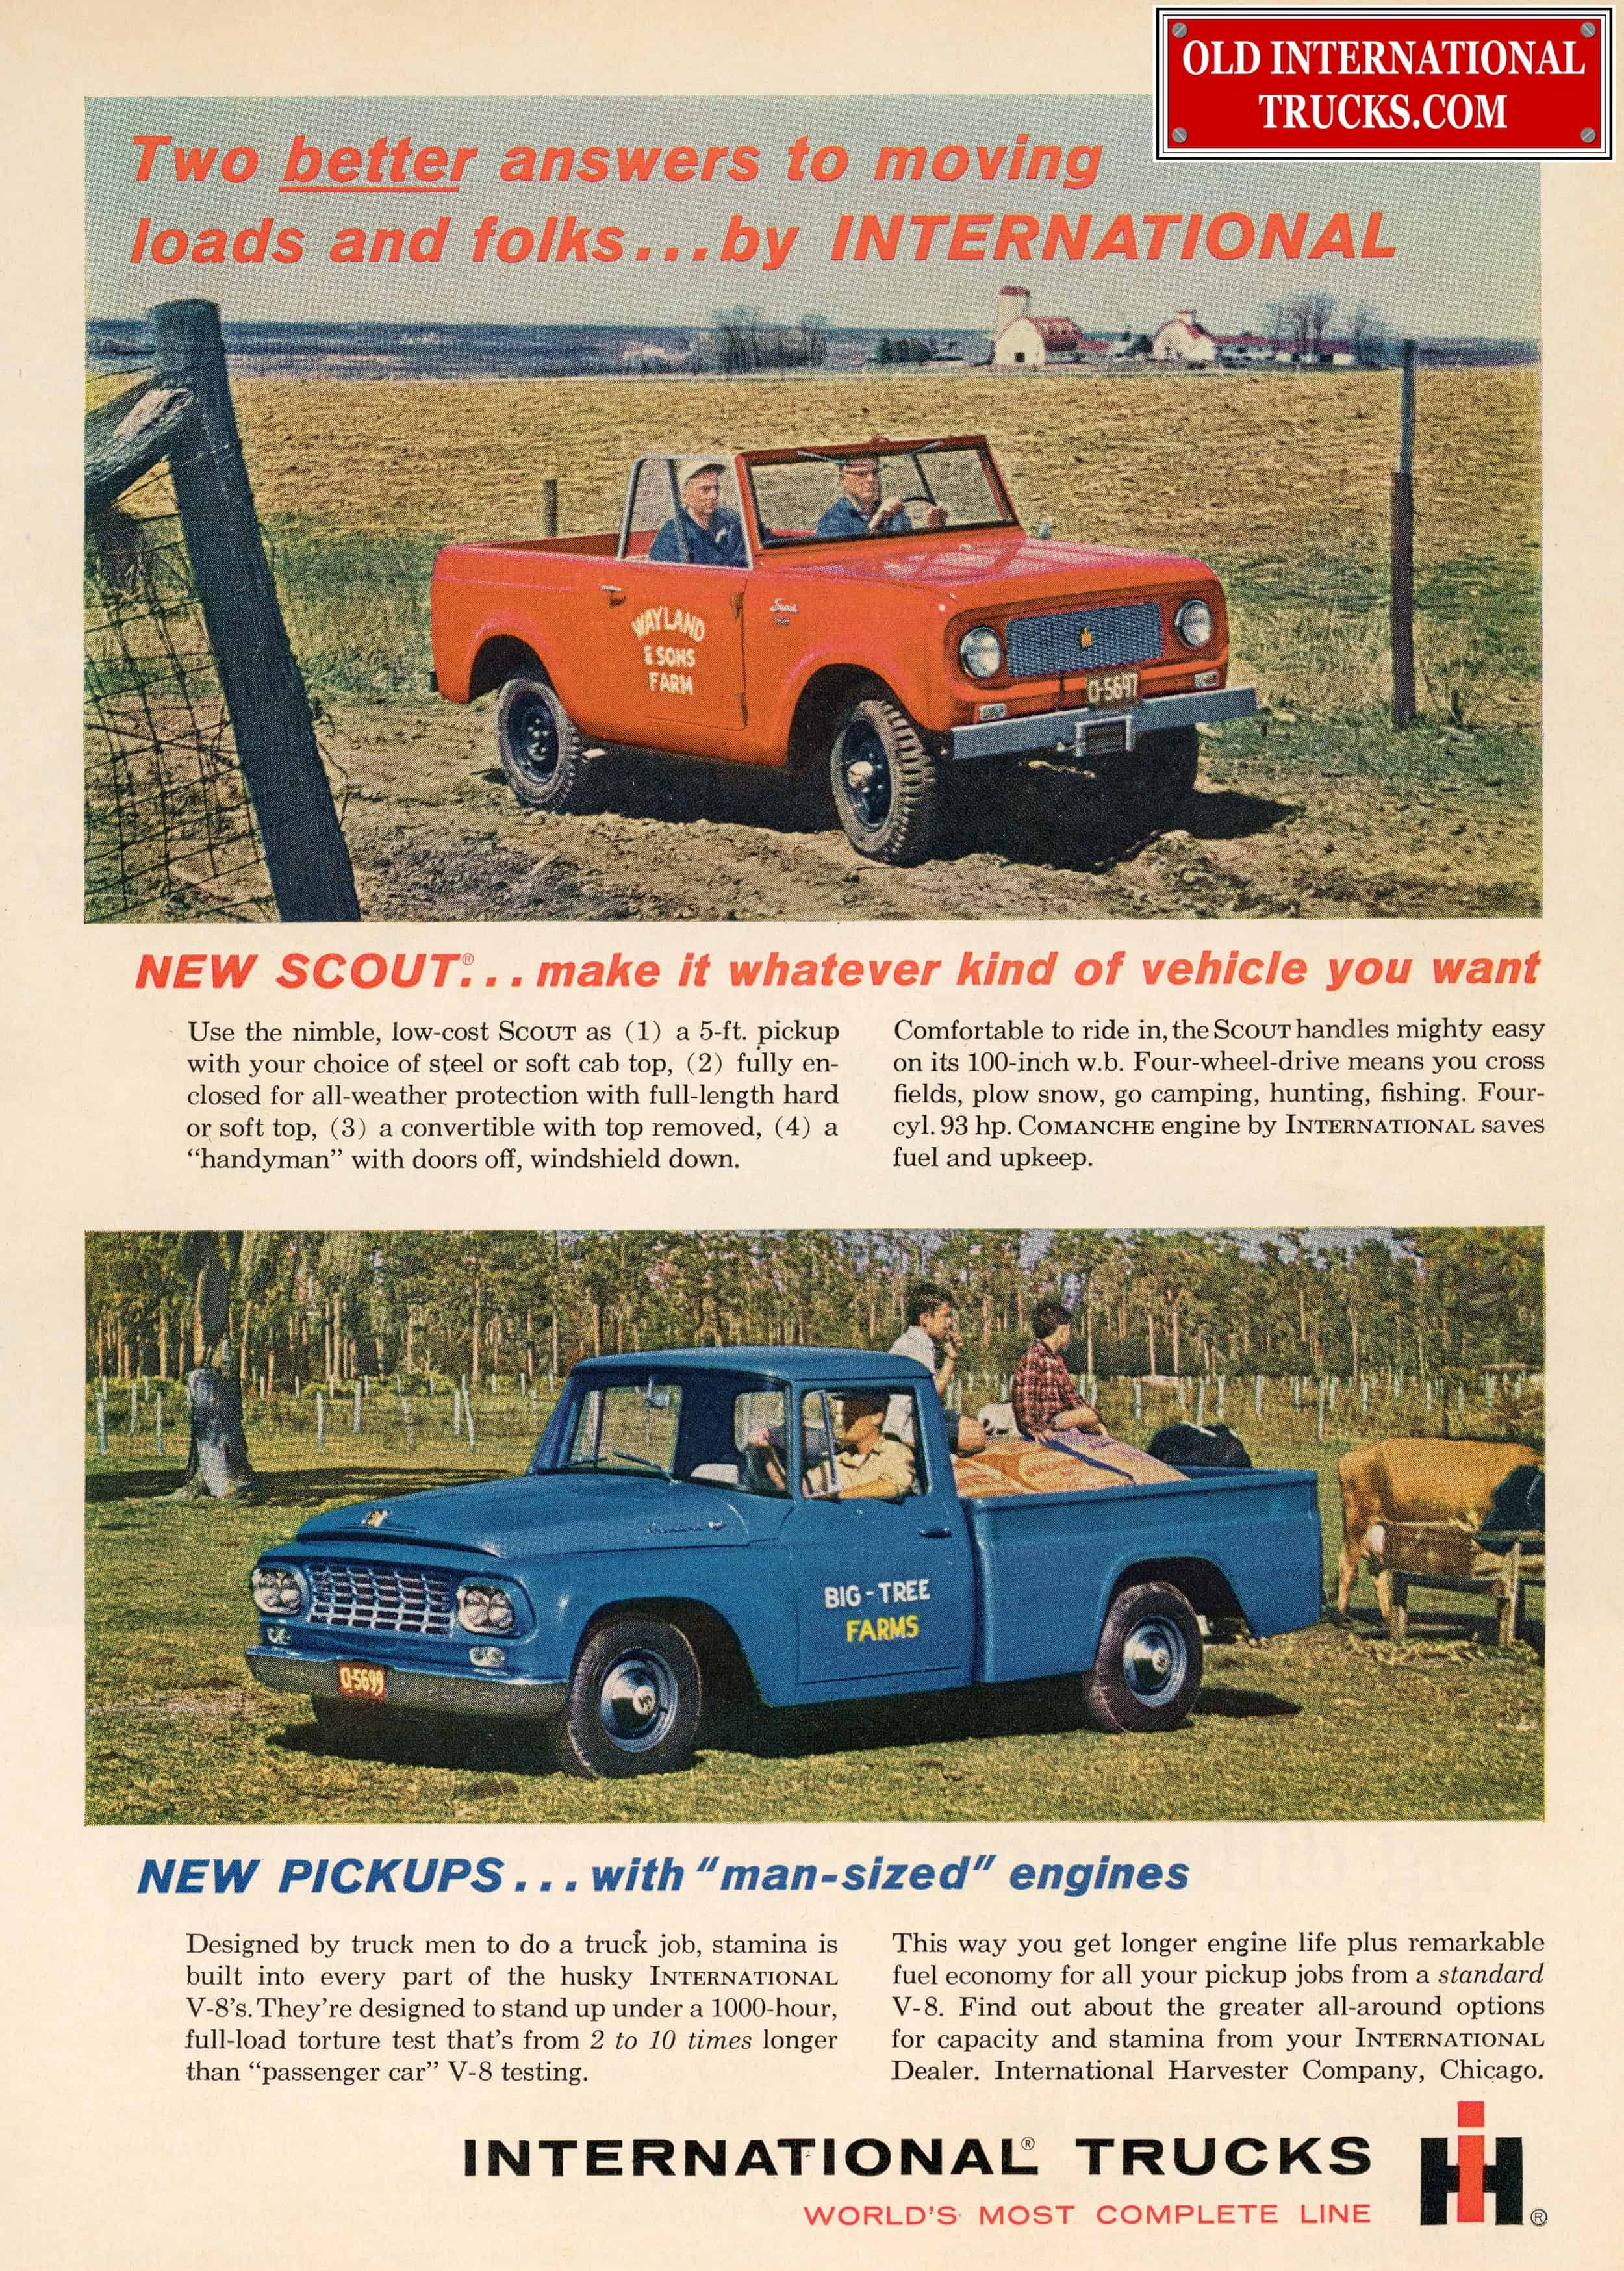 Old International Ads From The C Series Models 1961-1962